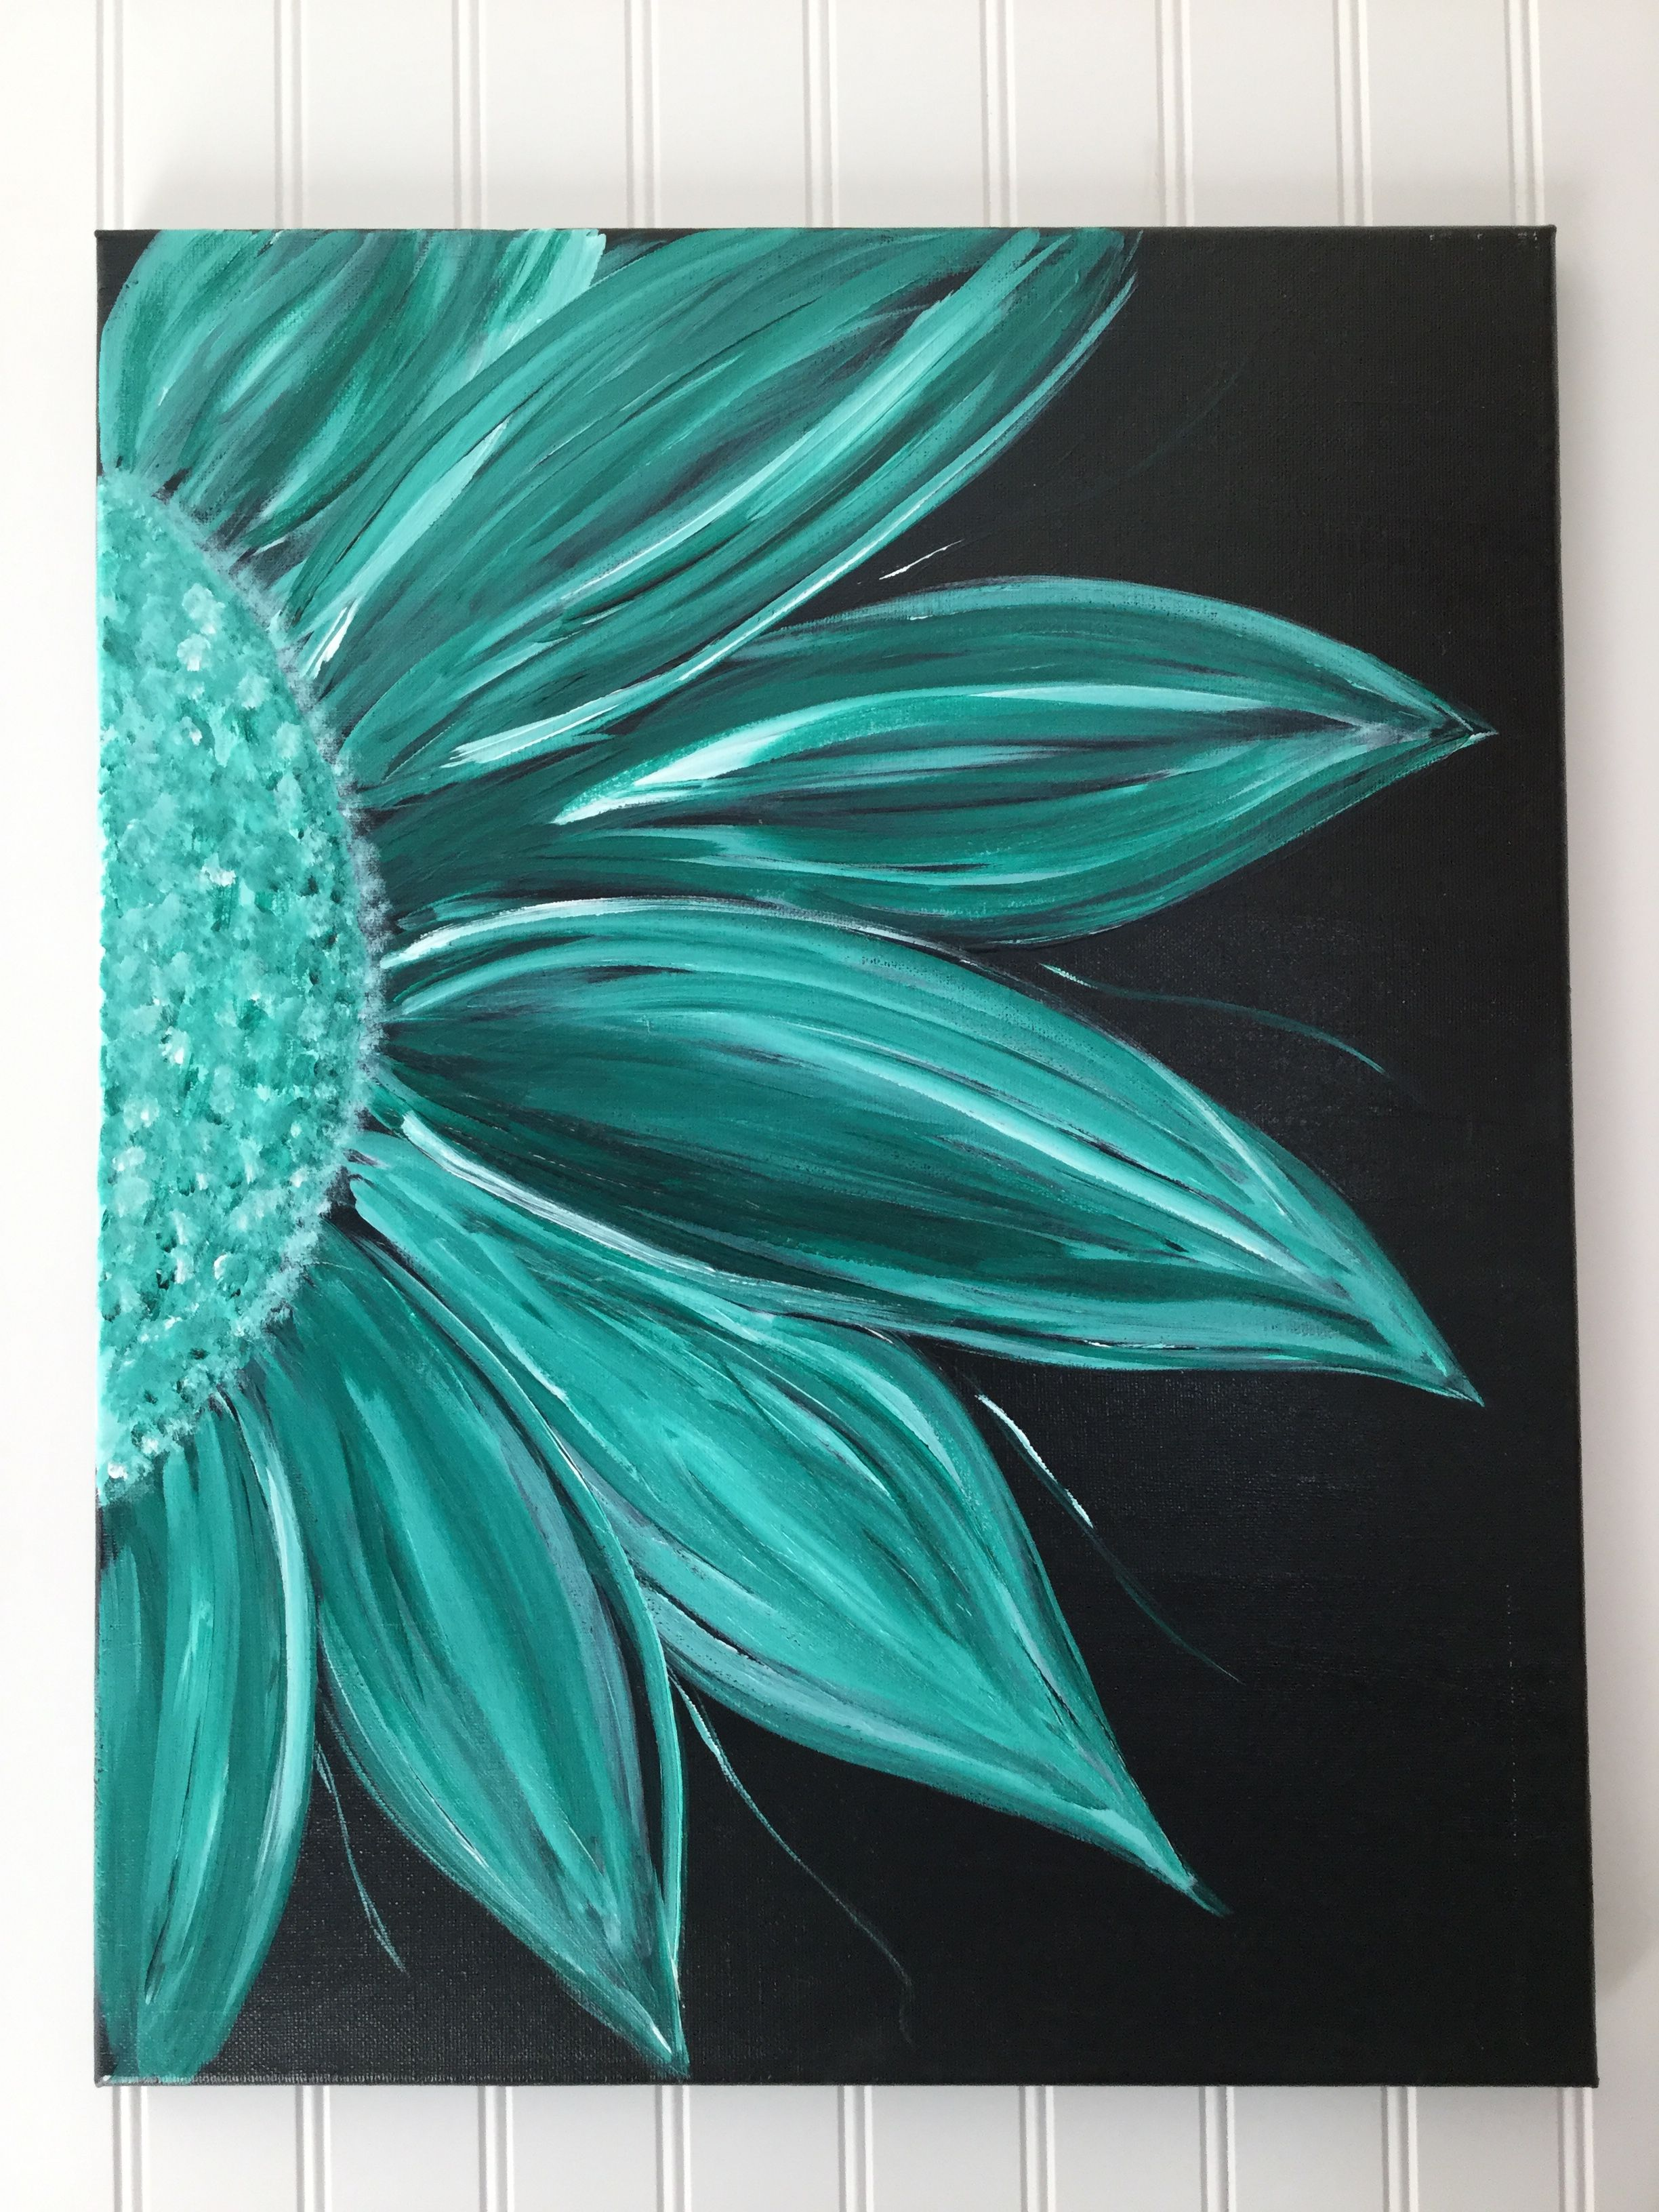 Acrylic Flower painting on black background By MJL Canvas 2448x3264